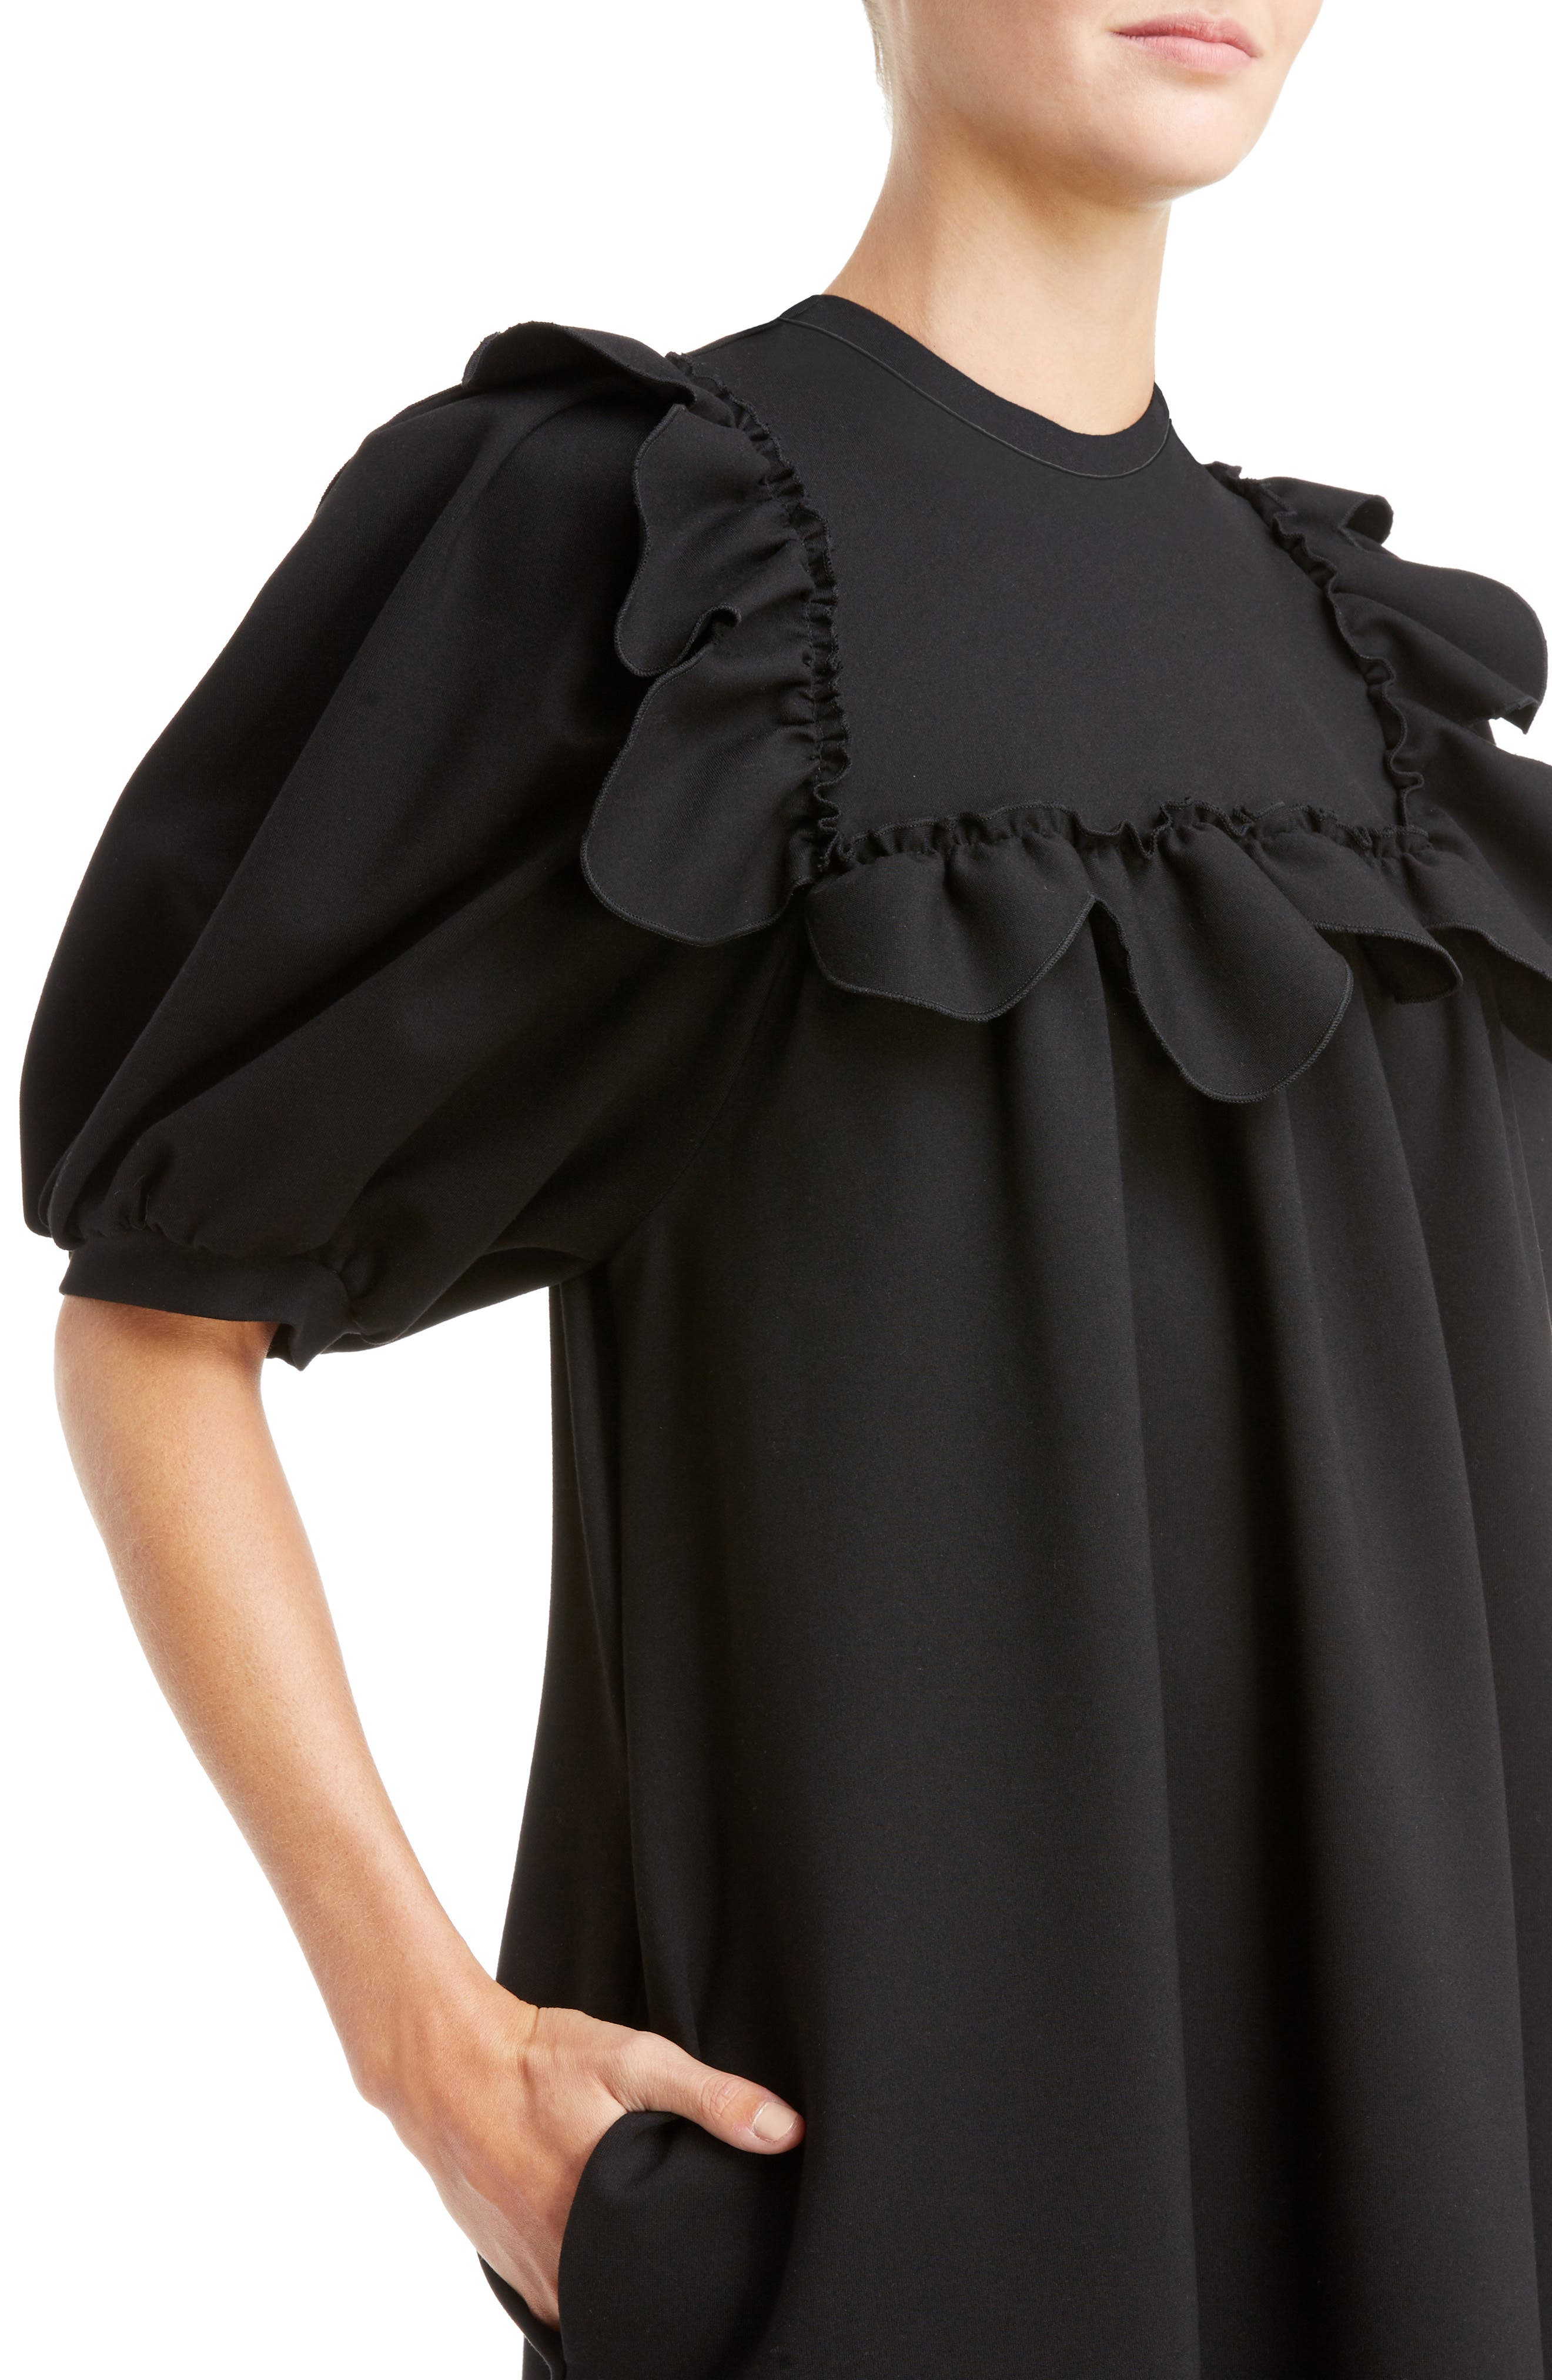 Ruffle Bib Dress,                             Alternate thumbnail 4, color,                             001